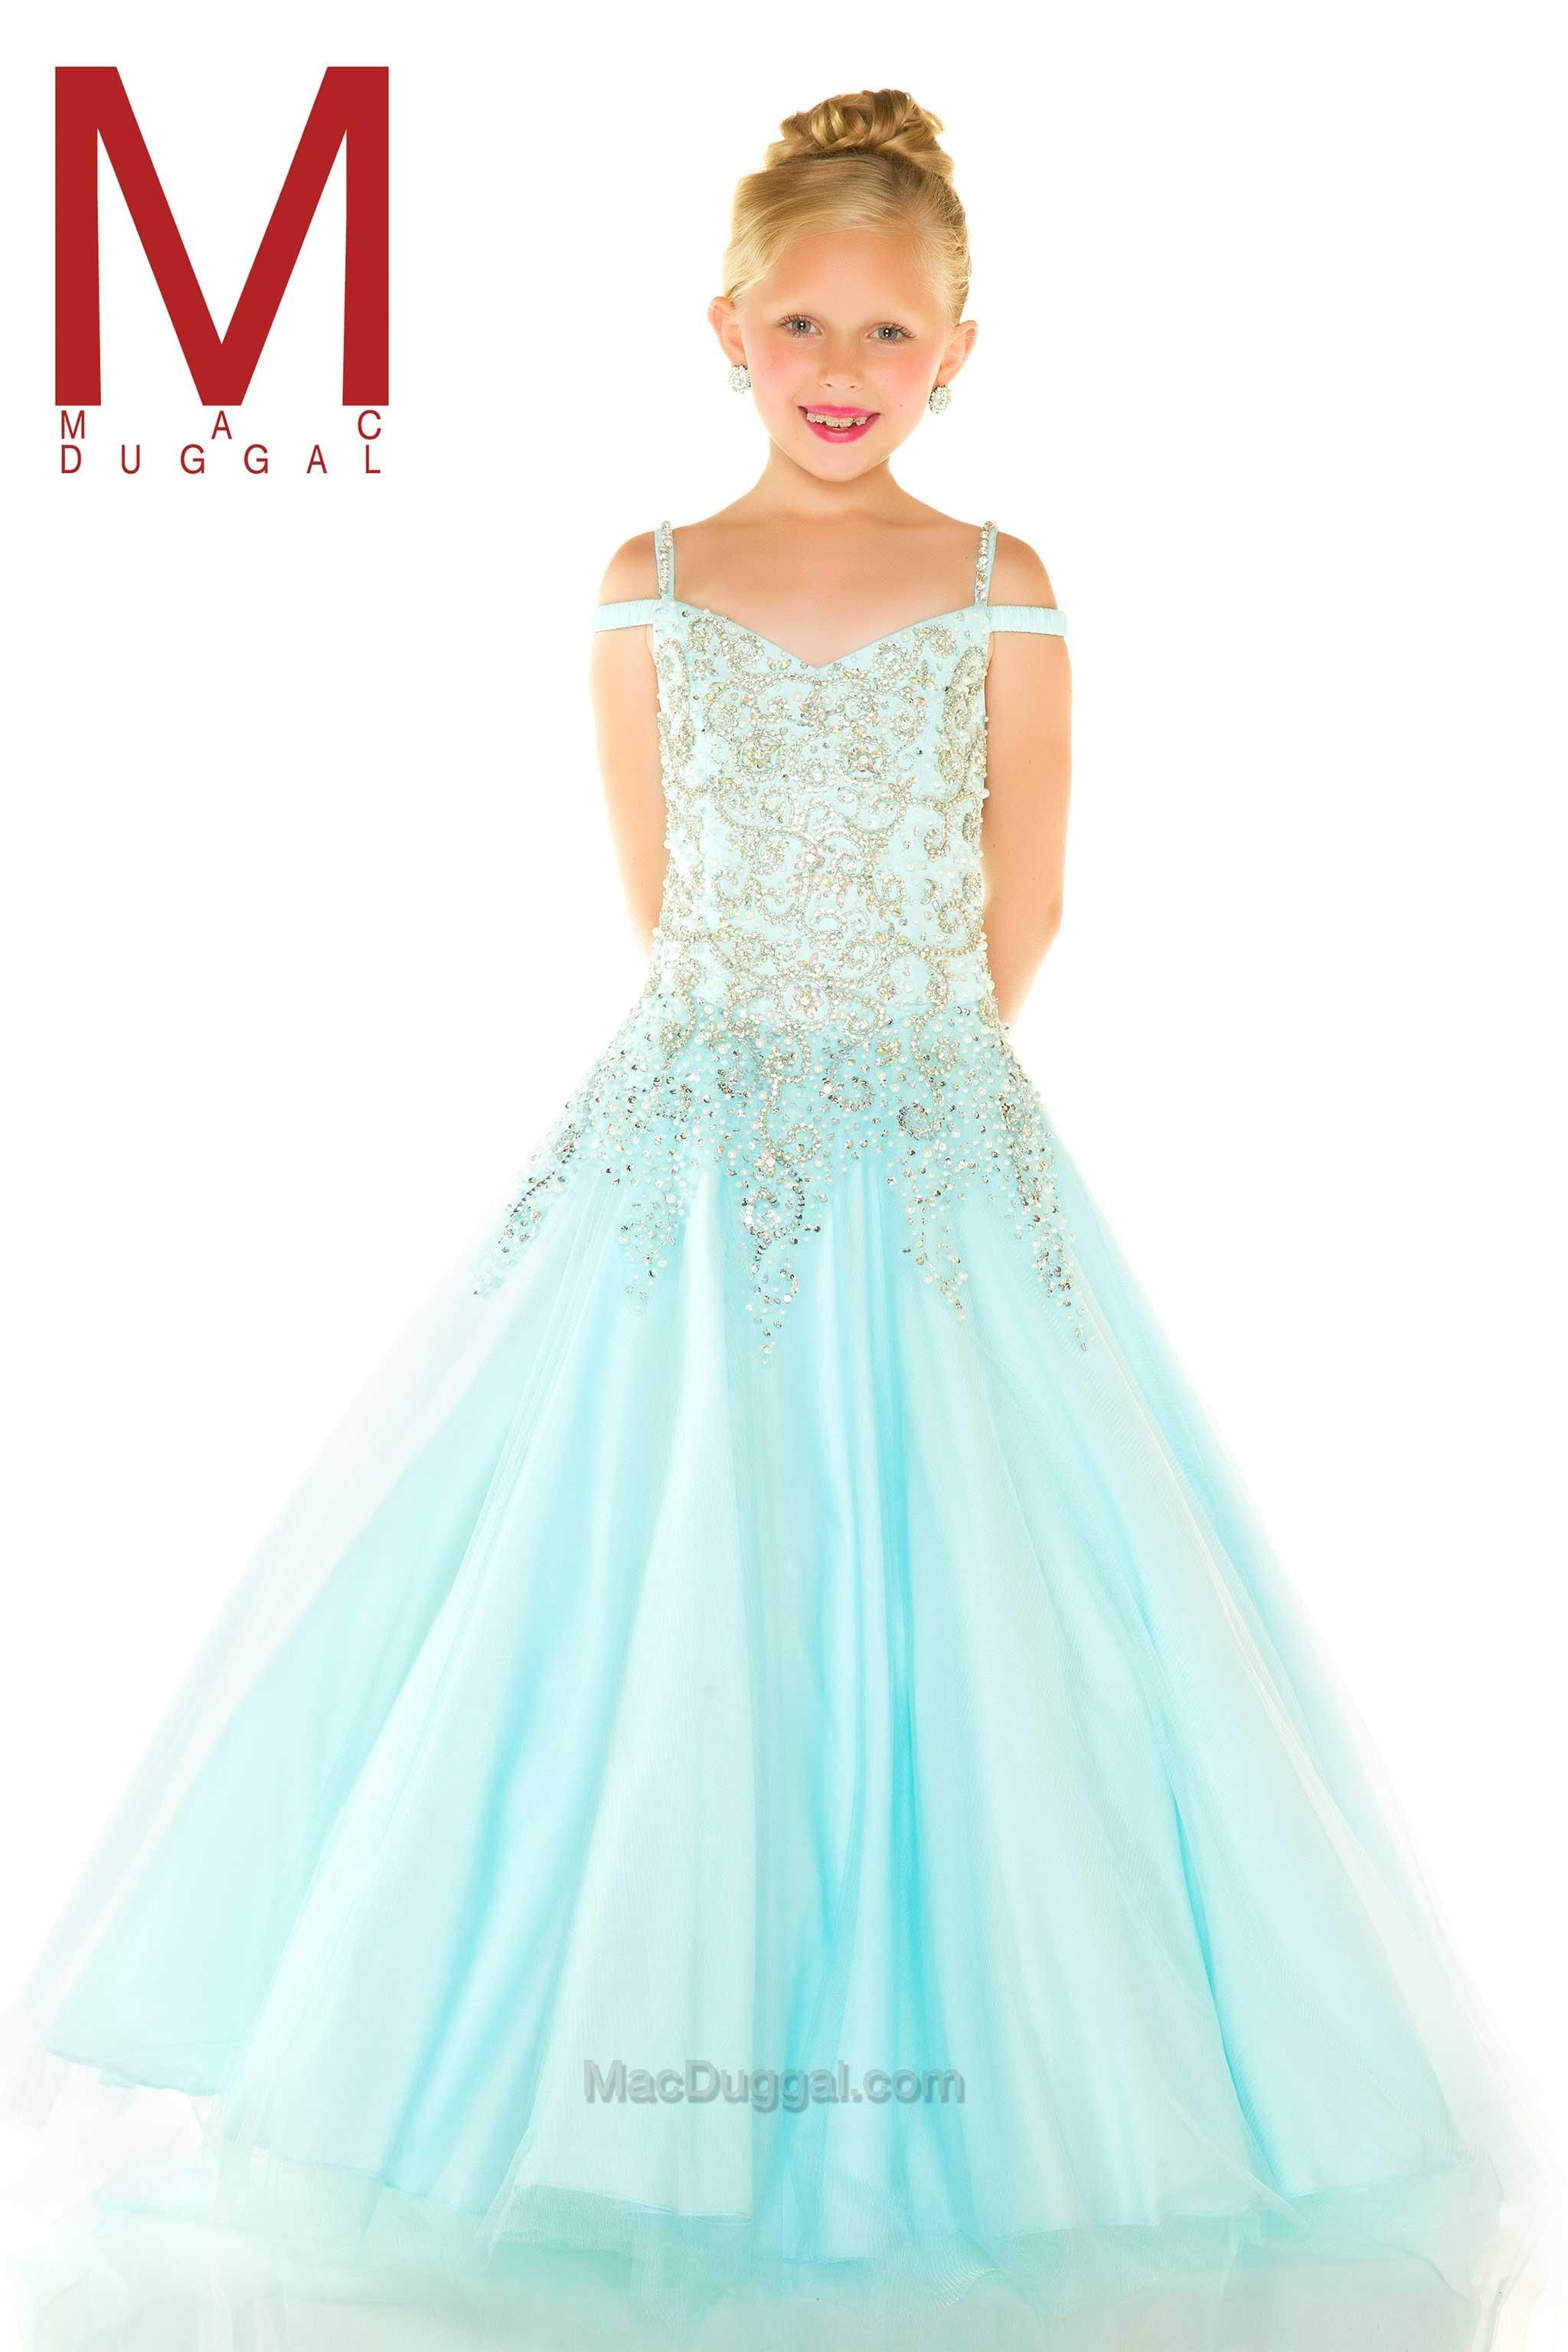 aqua girls pageant dress | Frozen party | Pinterest | Pageants, Aqua ...